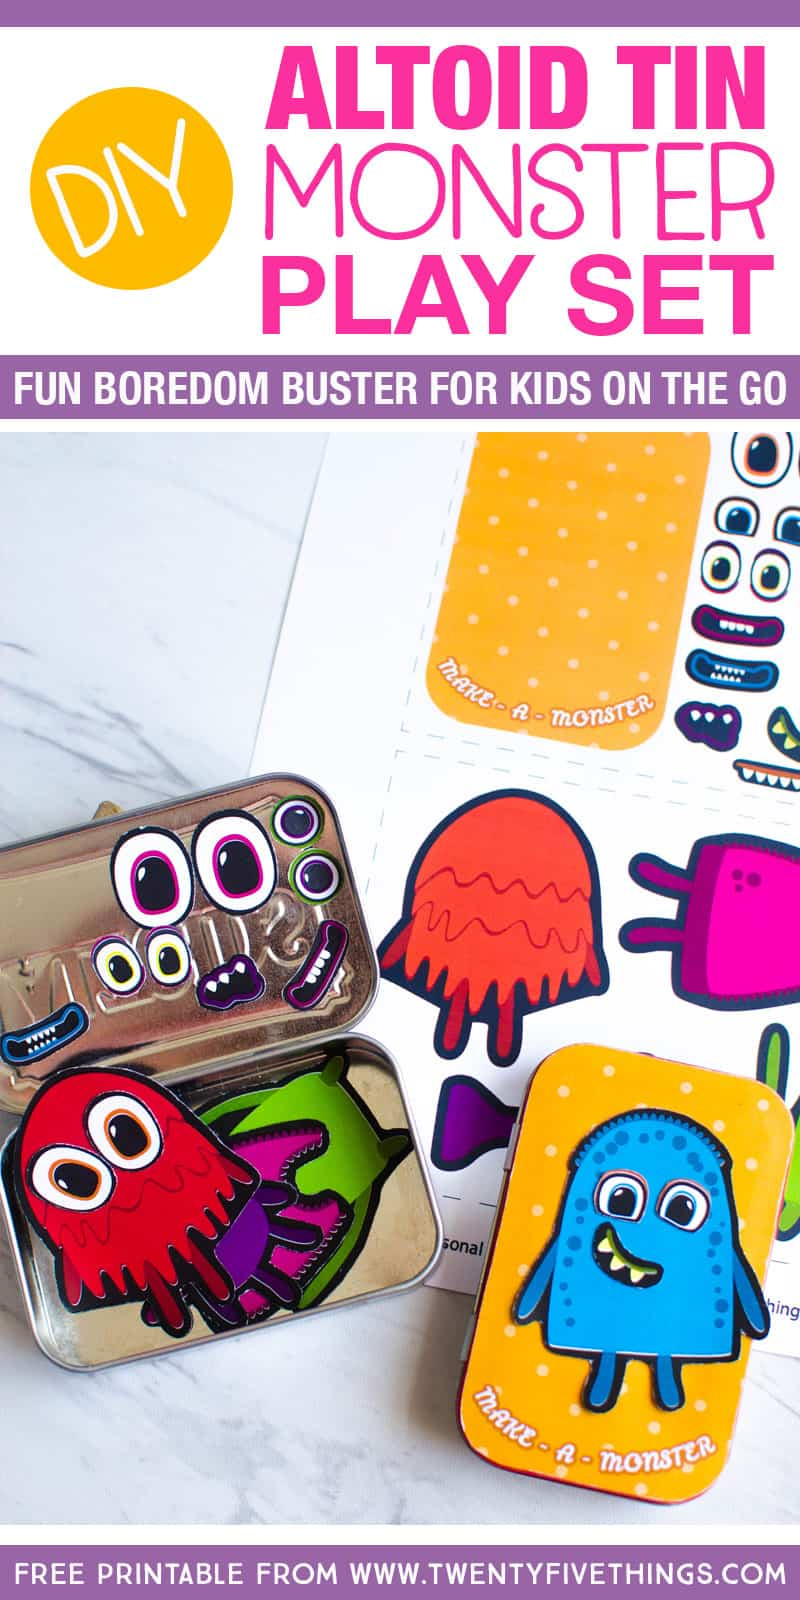 DIY Altoid Tin play set for kids: This adorable make-a-monster game for kids is super simple to put together. All you need is the free printable, an empty mint tin, and a magnet sheet. Keep them in your purse to keep the kids entertained at restaurants and doctor's appointments.